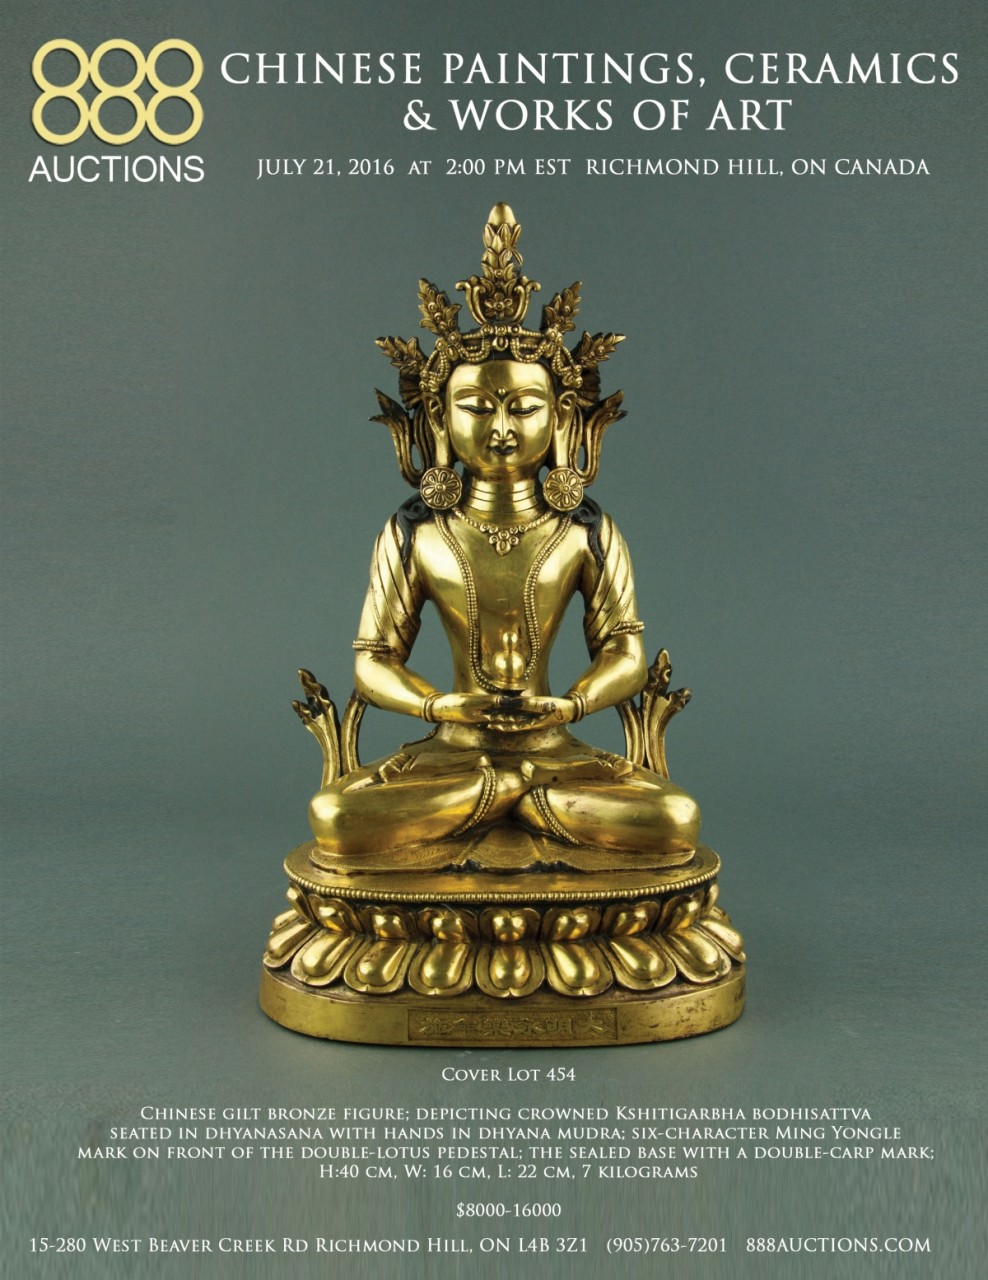 NEXT AUCTION 21 JULY 2016 CHINESE PAINTINGS, CERAMICS & WORKS OF ART